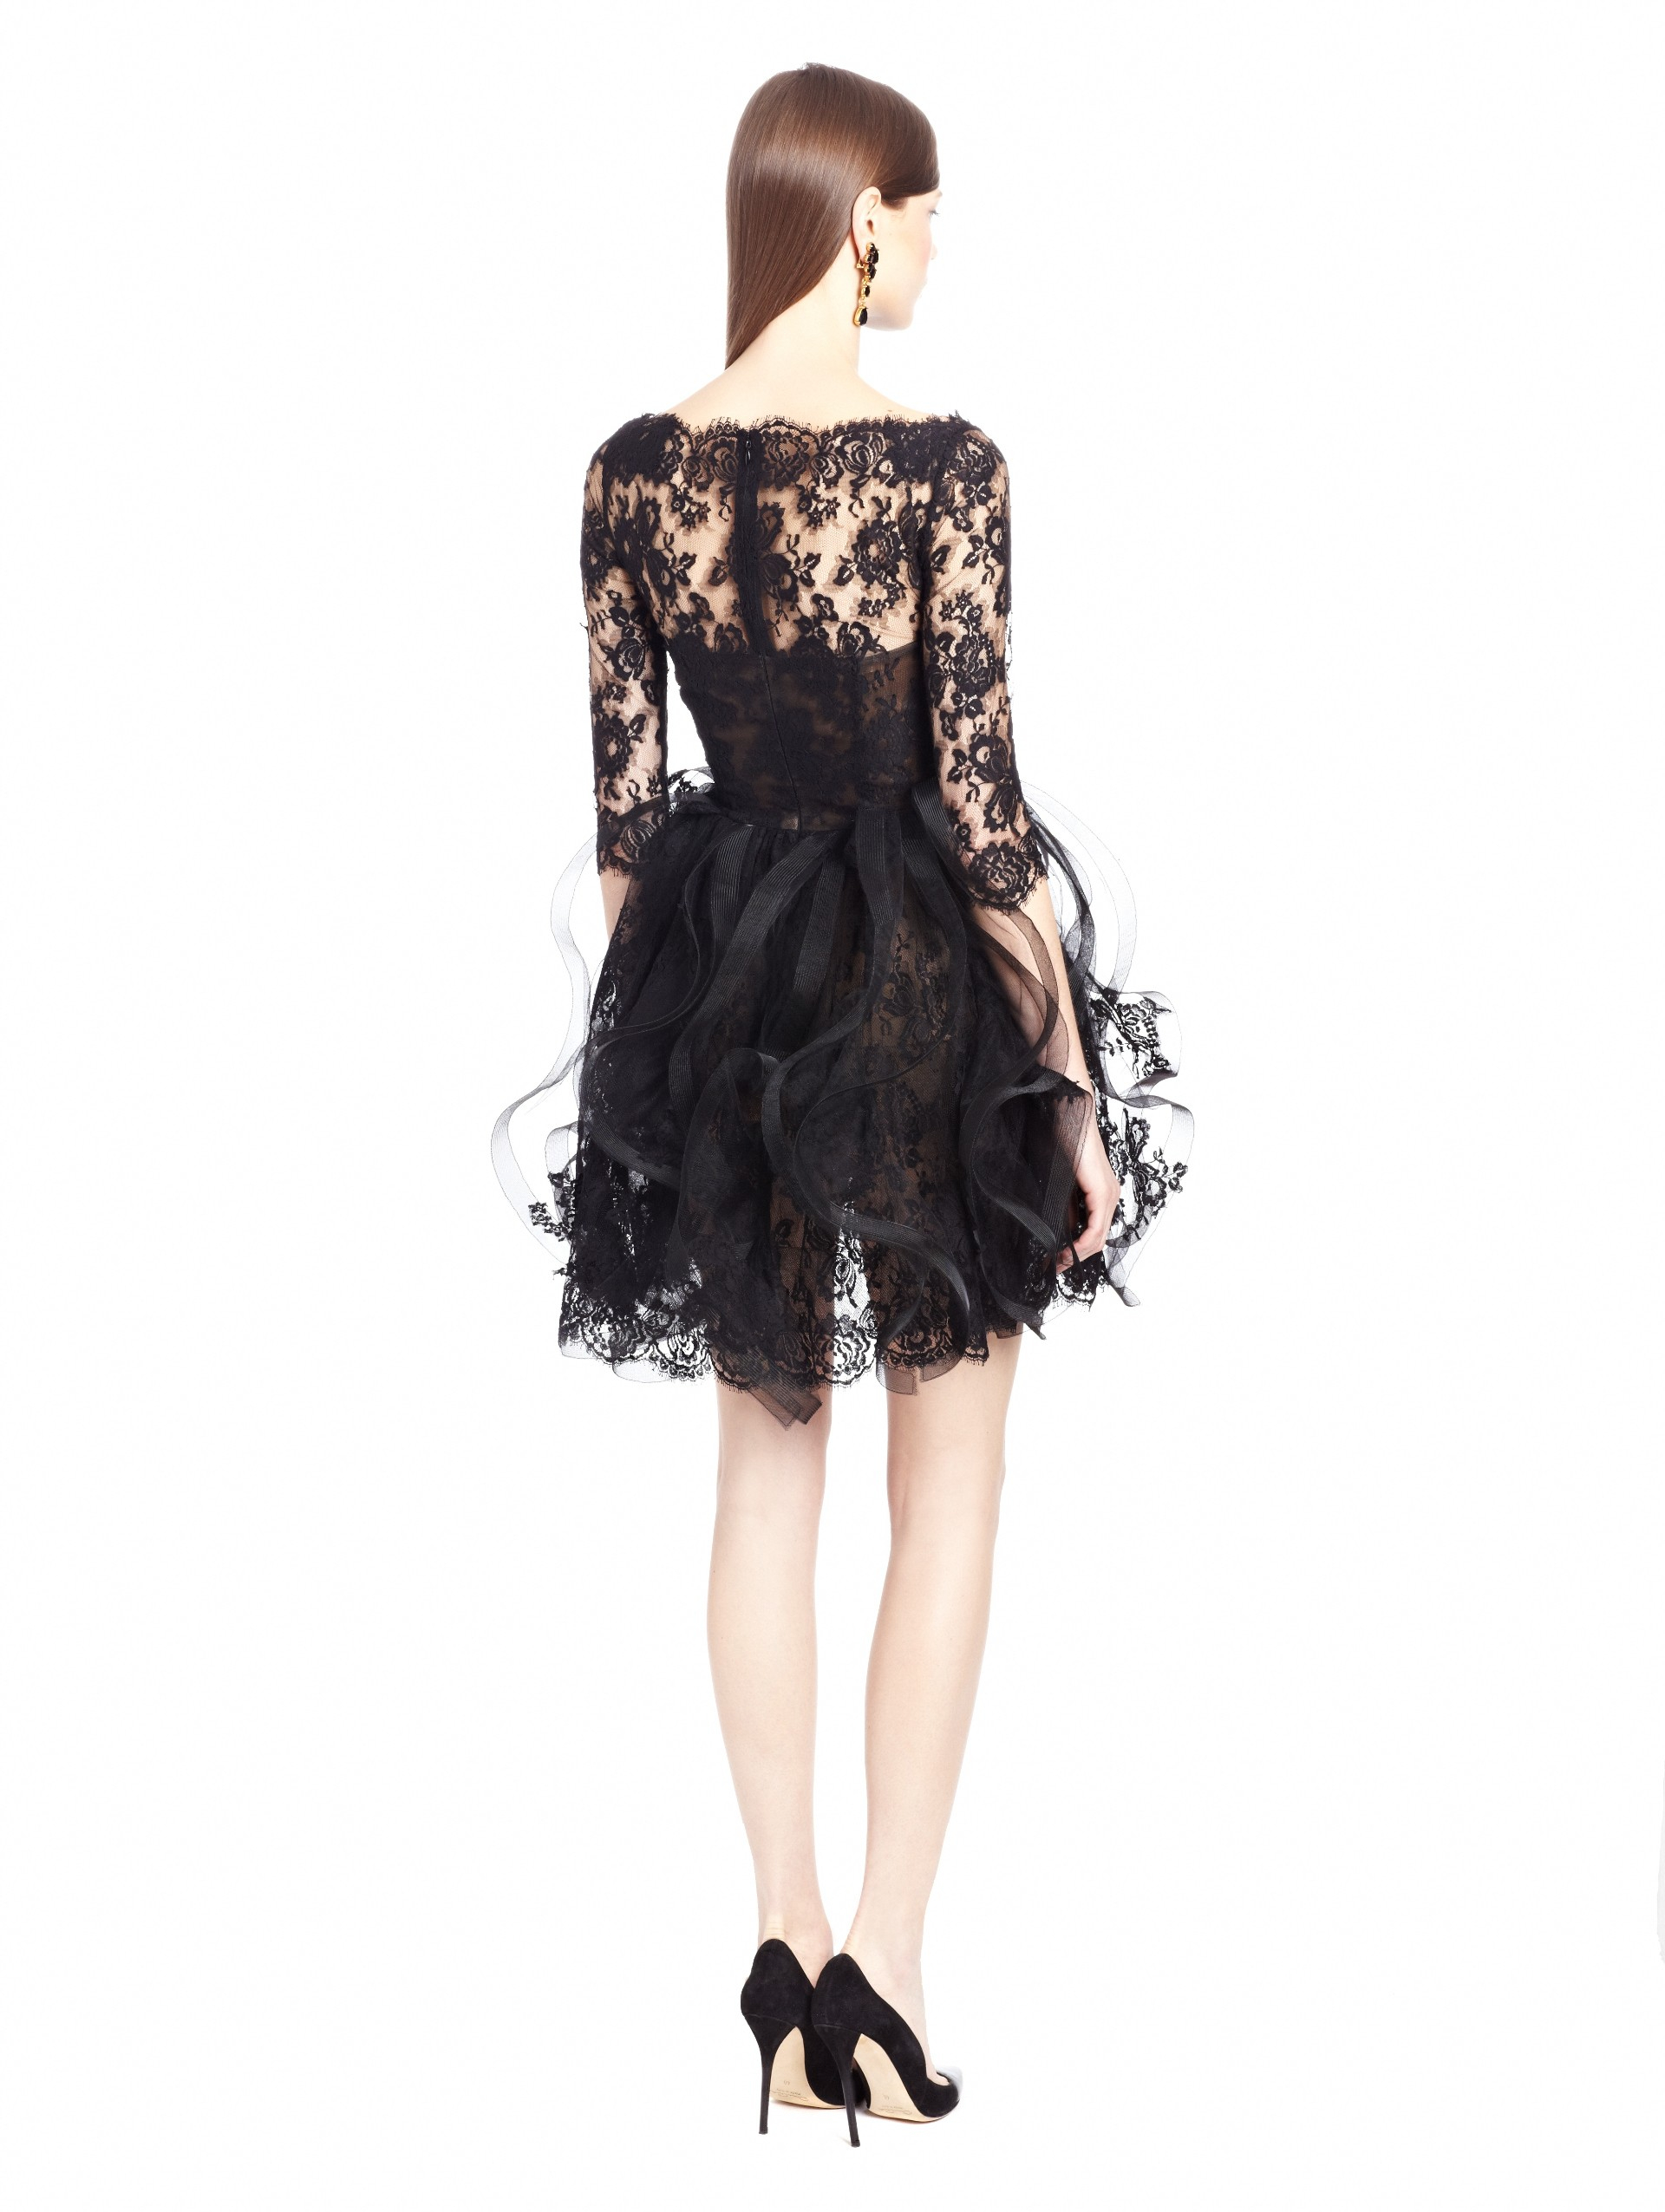 e847537e44331 Gallery. Women's Black Cocktail Dresses Women's Black Lace Cocktail Dresses